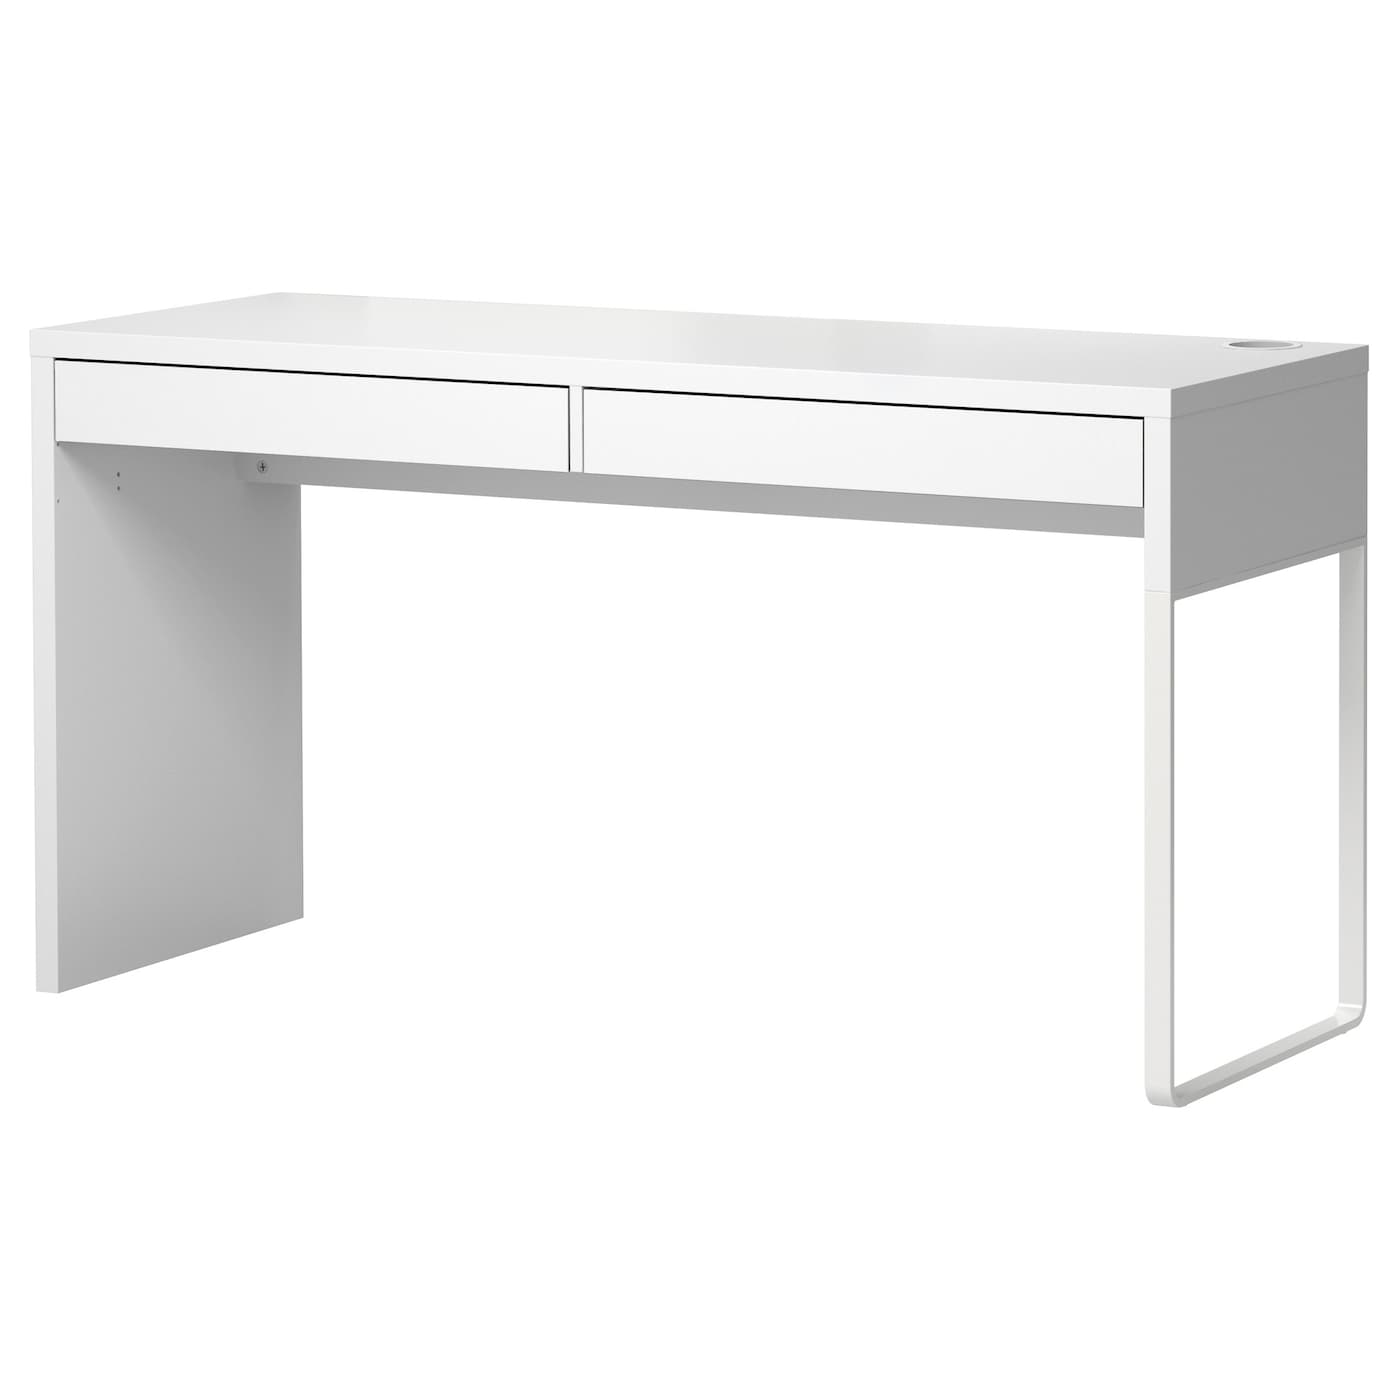 Ikea Micke Desk A Long Table Top Makes It Easy To Create Worke For Two